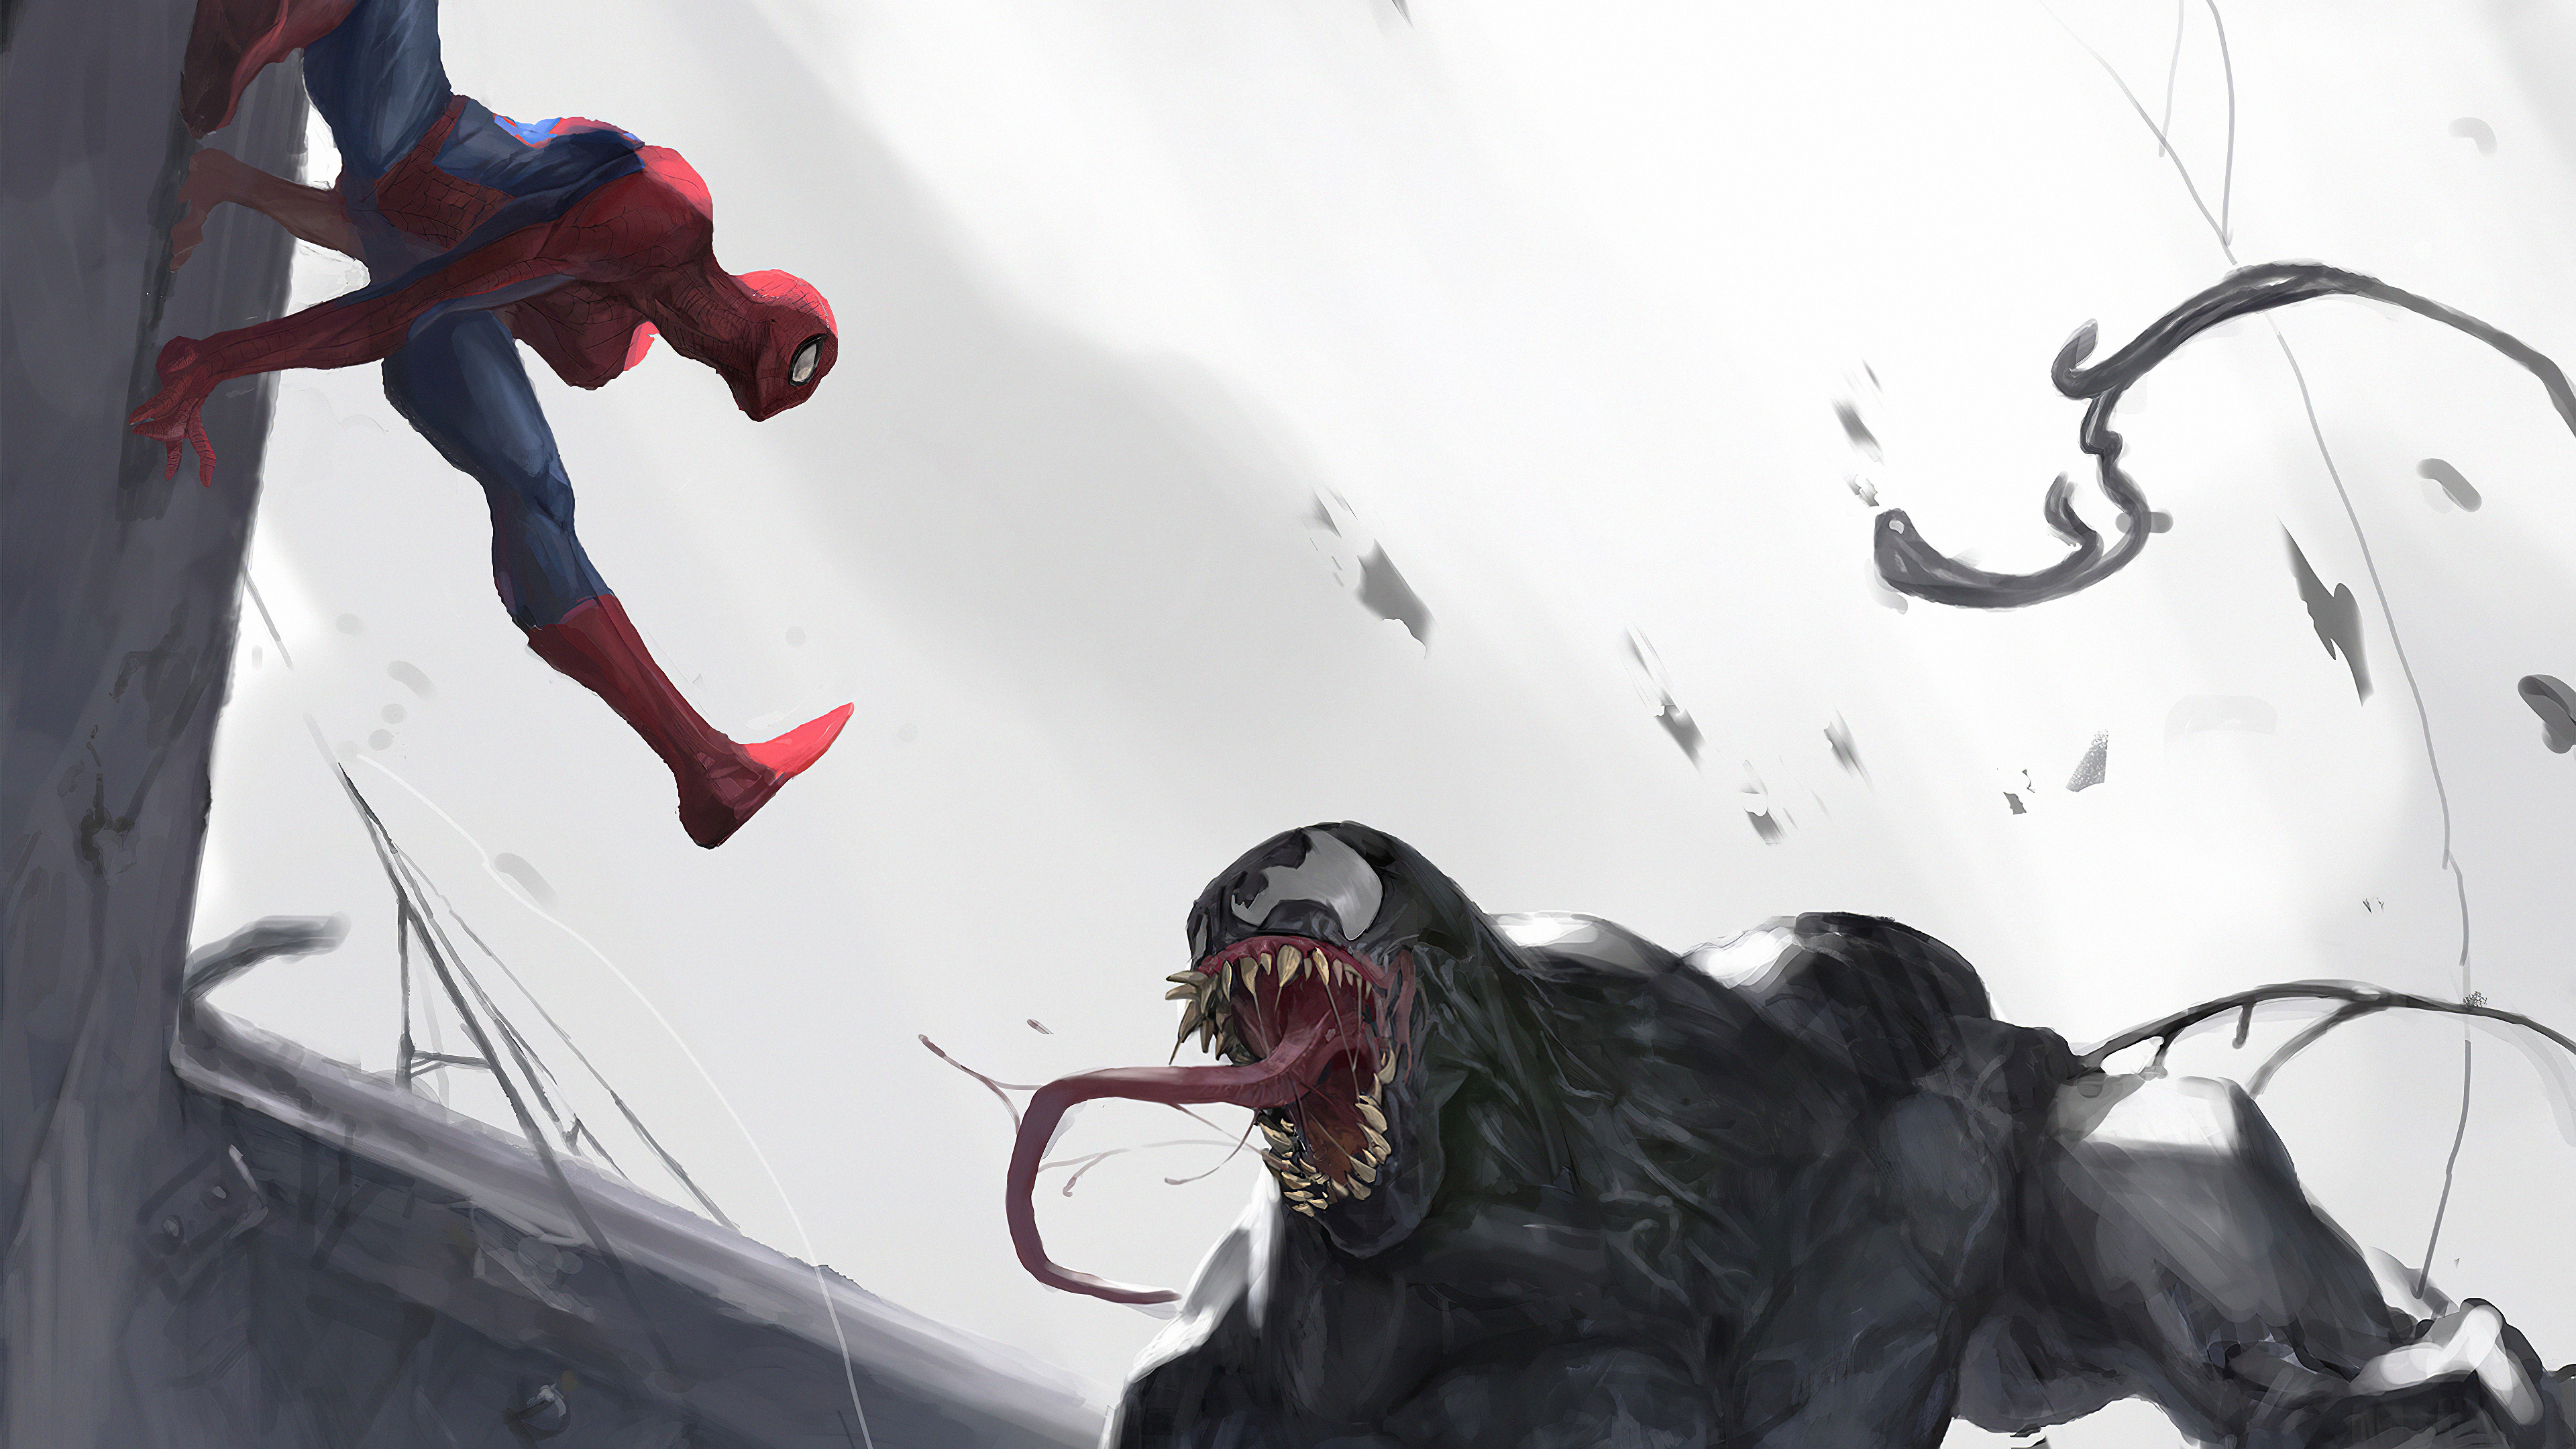 spider man vs venom art 1576097617 - Spider Man Vs Venom Art - Venom Vs Spider Man 4k wallpaper, Spider Man Vs Venom 4k wallpaper